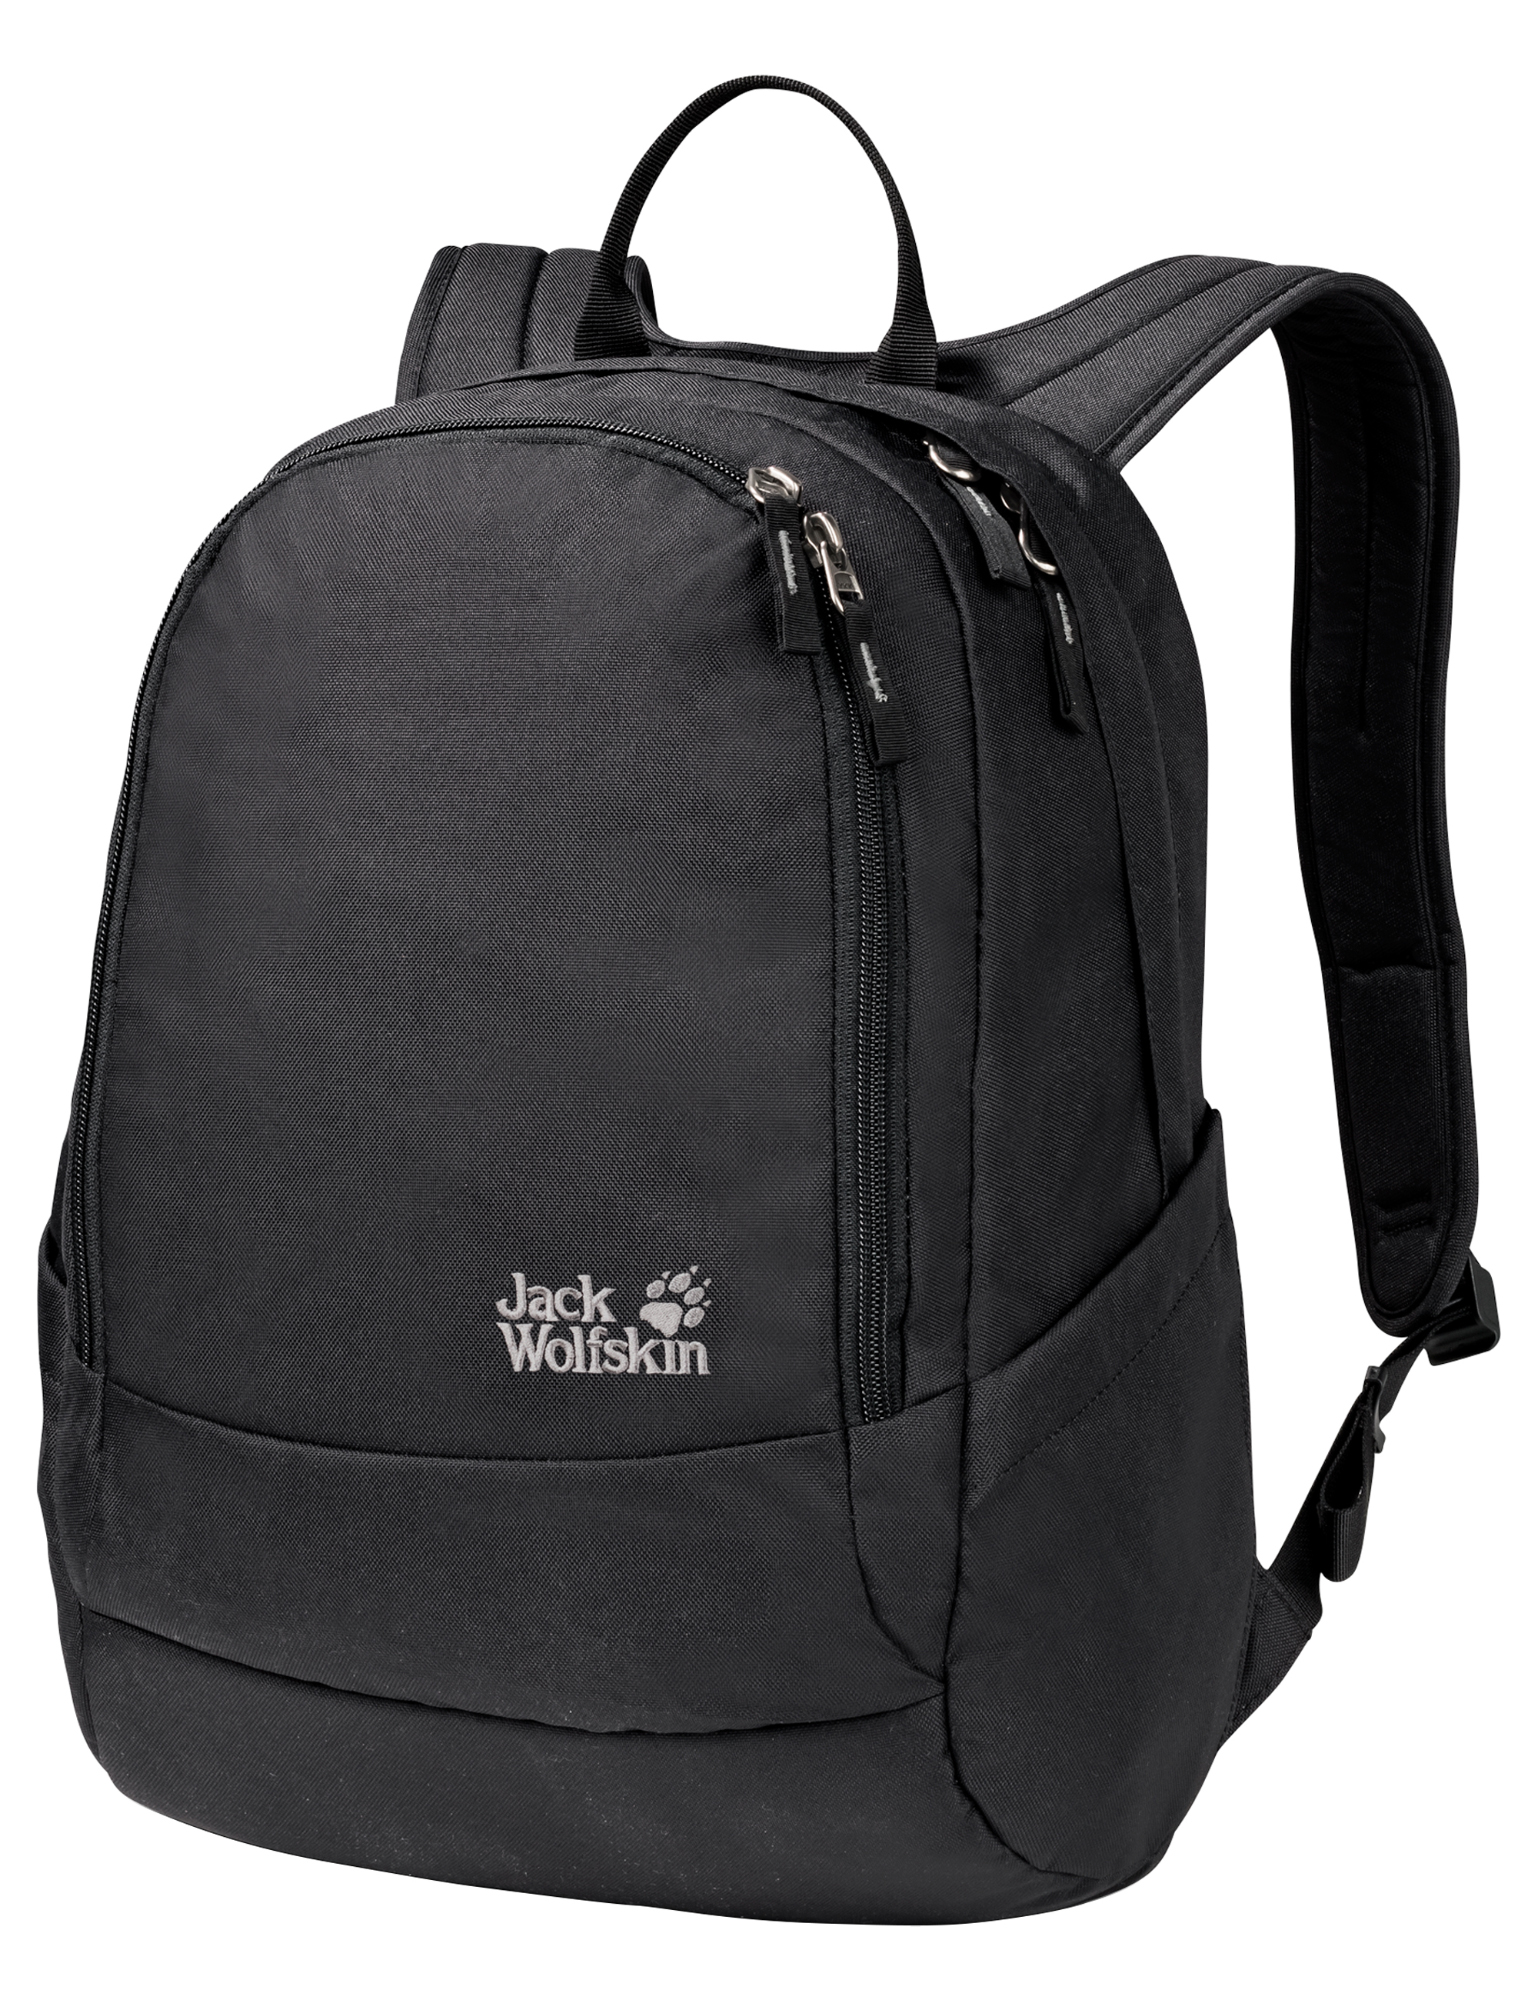 Jack Wolfskin Perfect Day - Rygsæk 22 liter - Sort | Travel bags